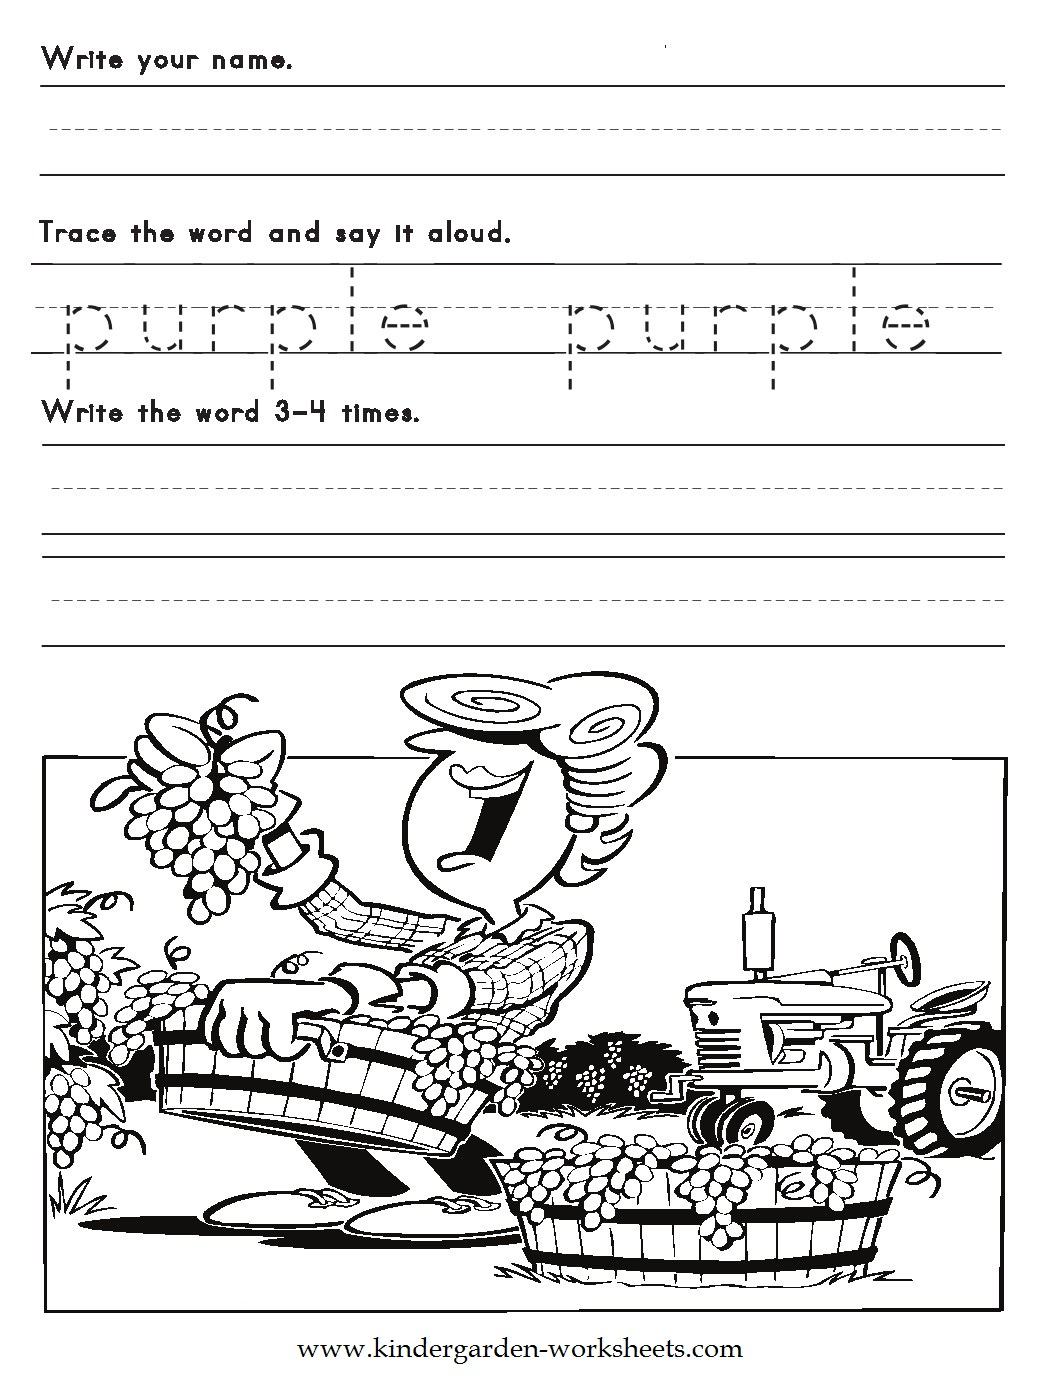 Kindergarten Worksheets: Color Words Worksheets - Purple | Free Printable Kindergarten Worksheets Color Words